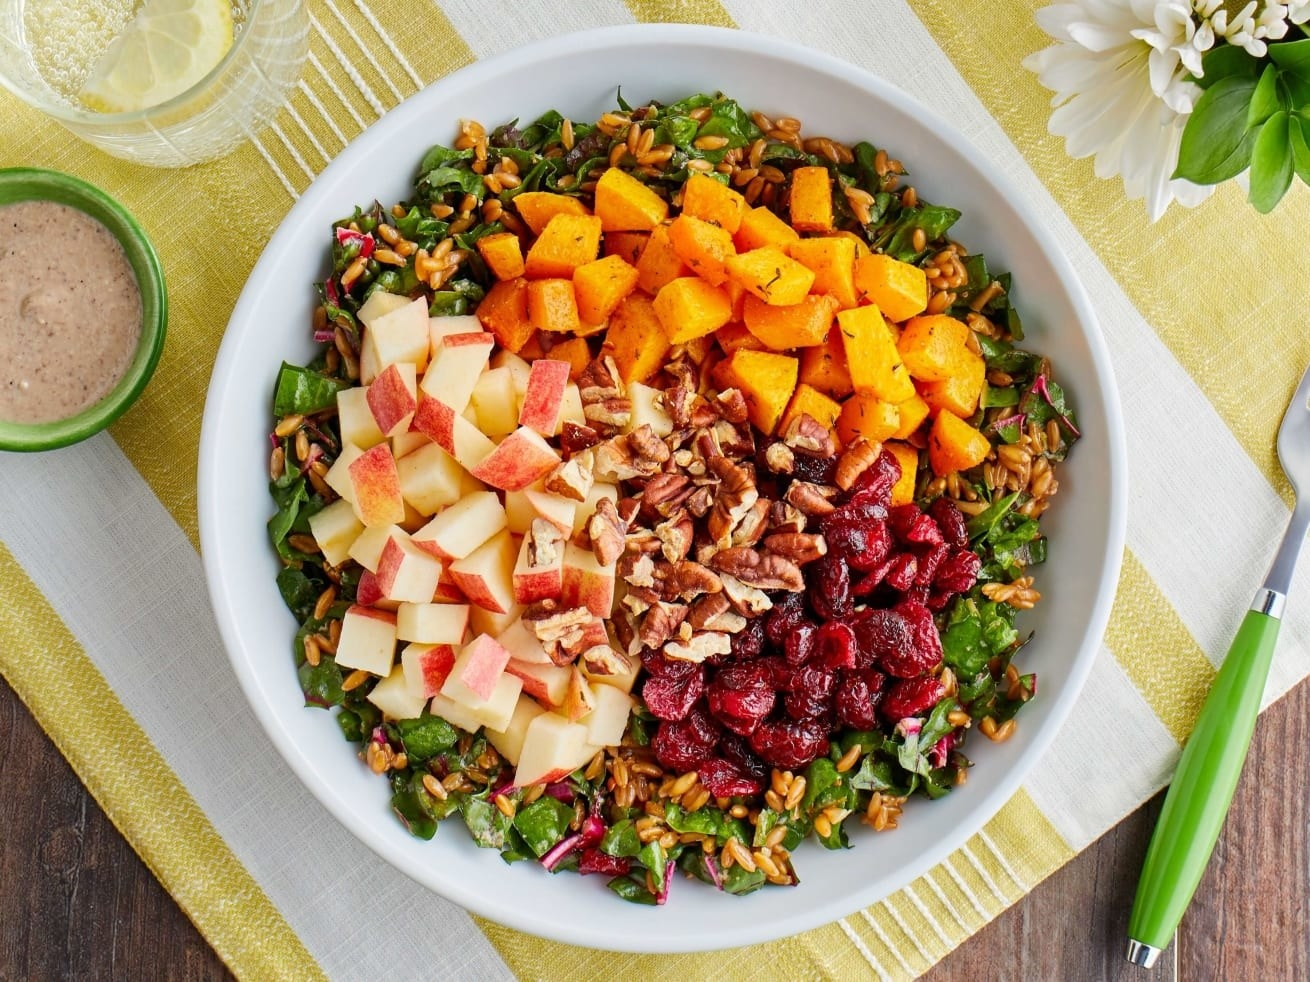 a harvest salad with apples, cranberries, walnuts, and squash over greens